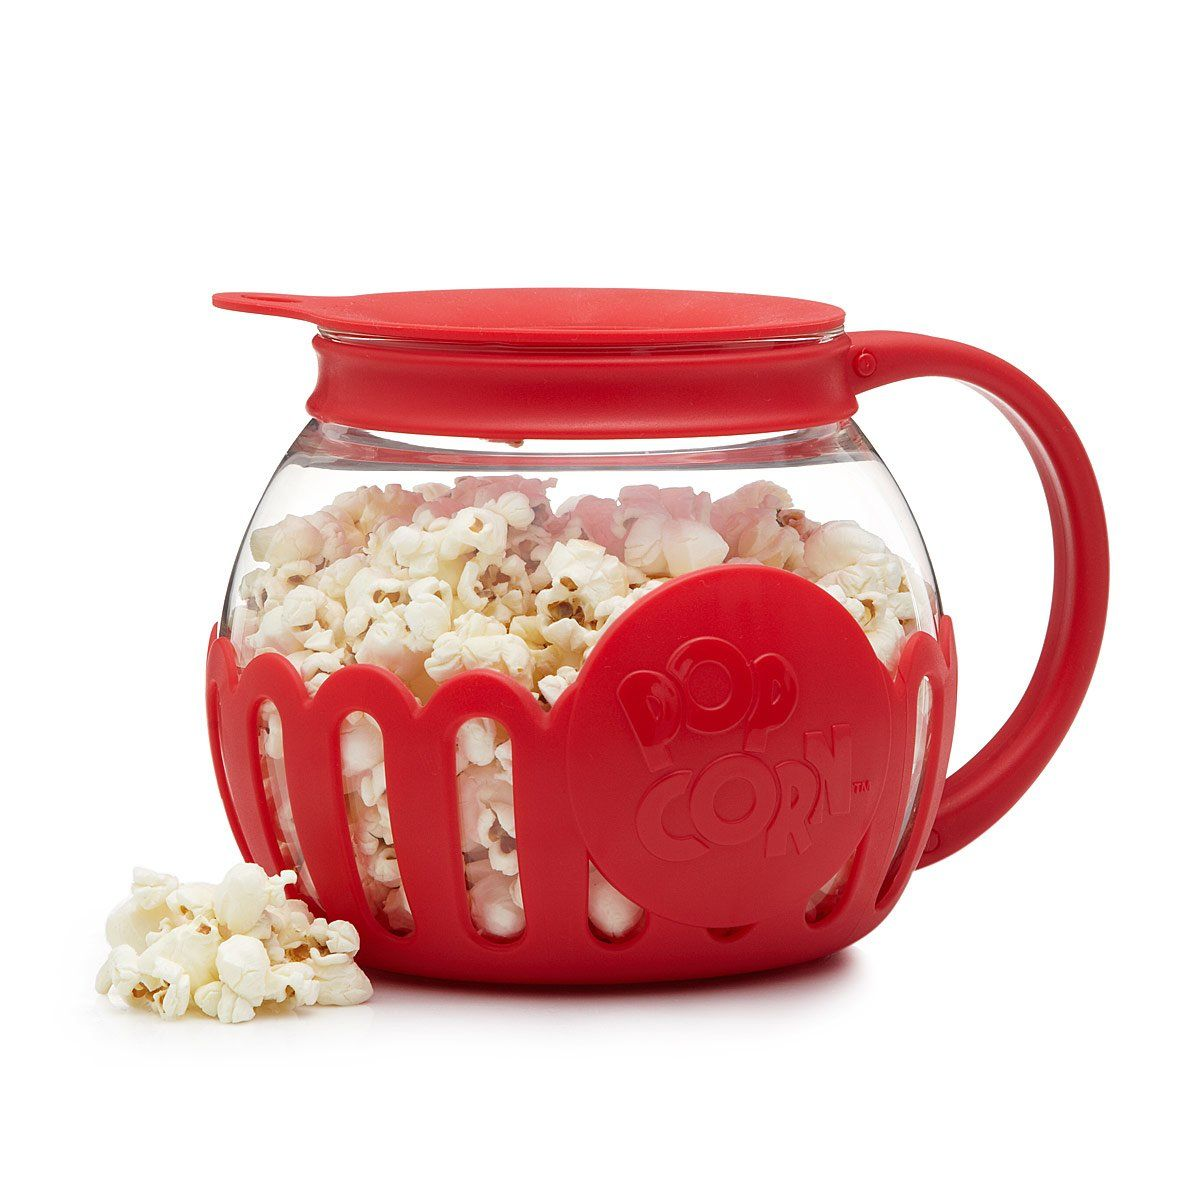 Microwave Popcorn Gets A Healthy Spin With This Glass Popper And Butter Melter Microwave Popcorn Popper Microwave Popcorn Popcorn Popper